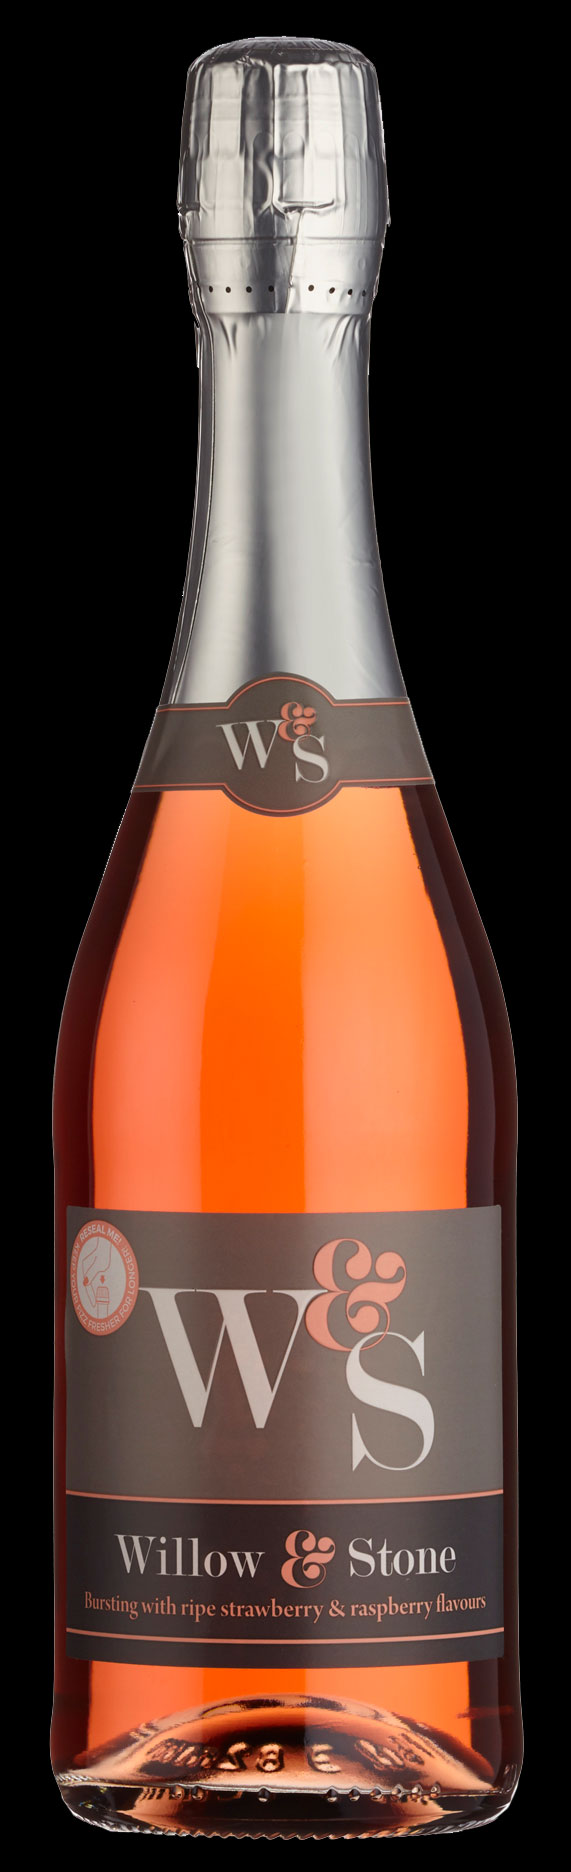 Willow & Stone Sparkling Rosé from Kingsland – drinks review